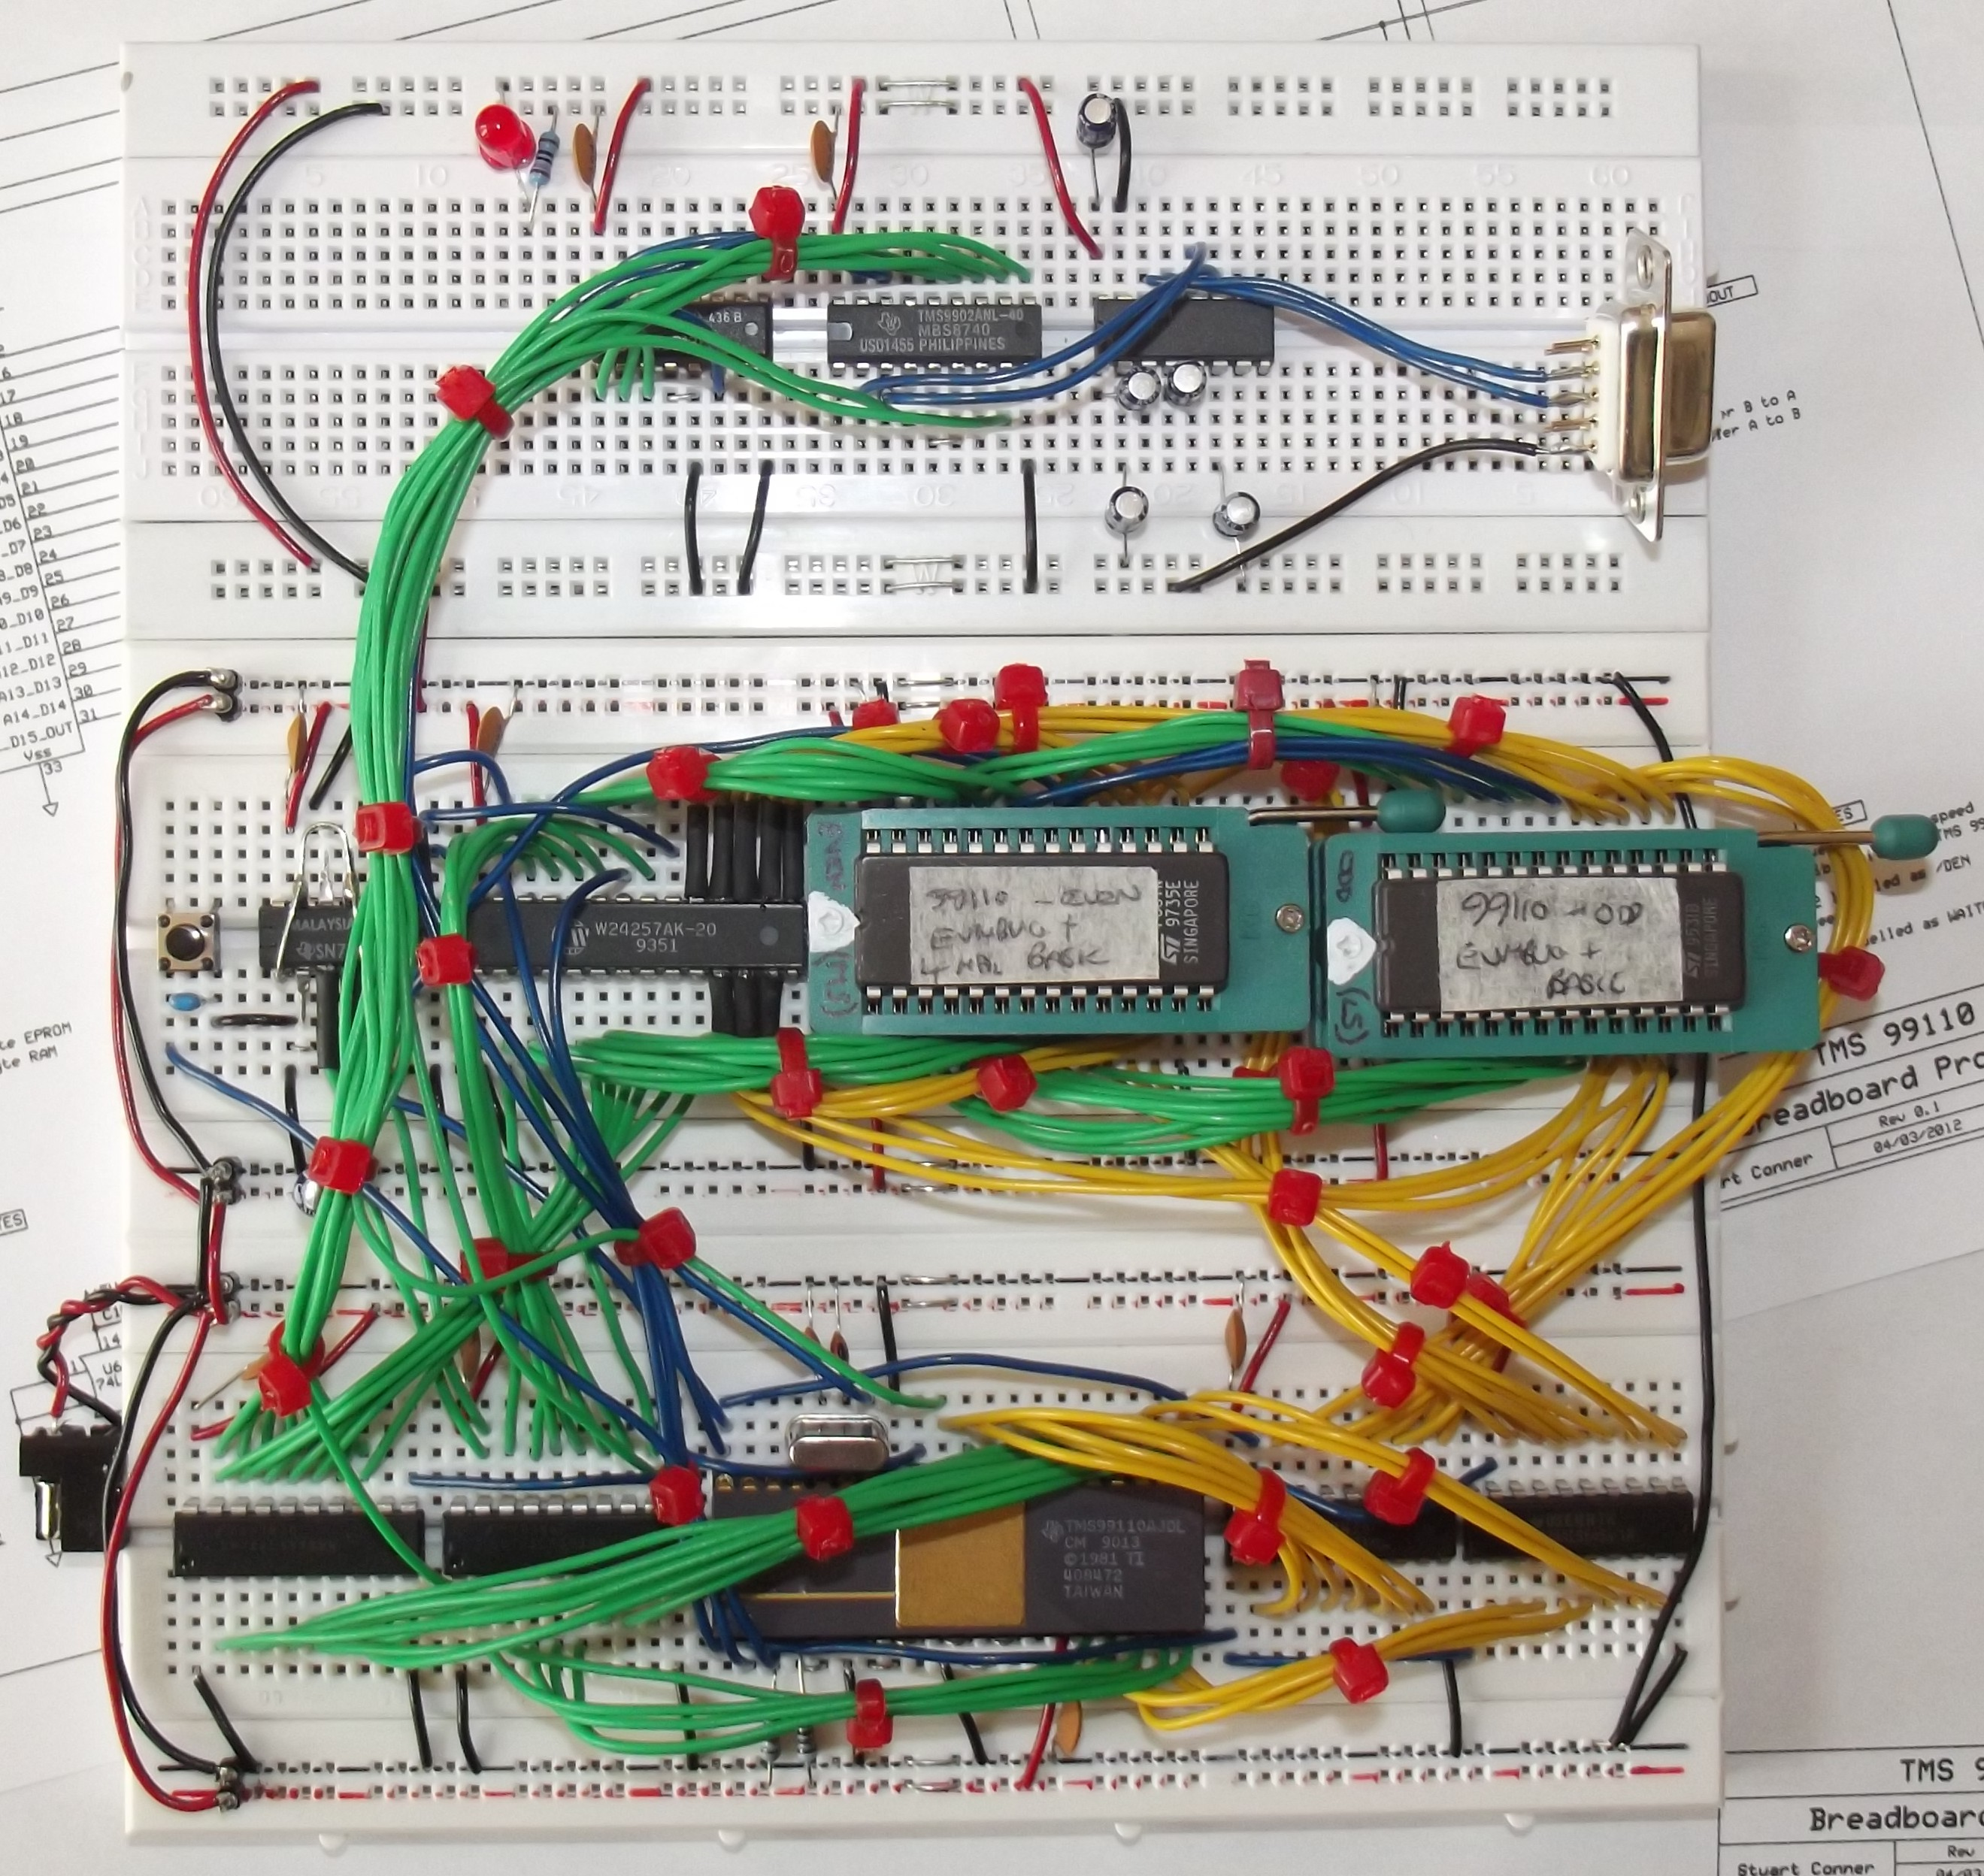 msd 6al wiring diagram ford breadboard circuits diagrams ndash the wiring diagram msd 6al wiring diagram